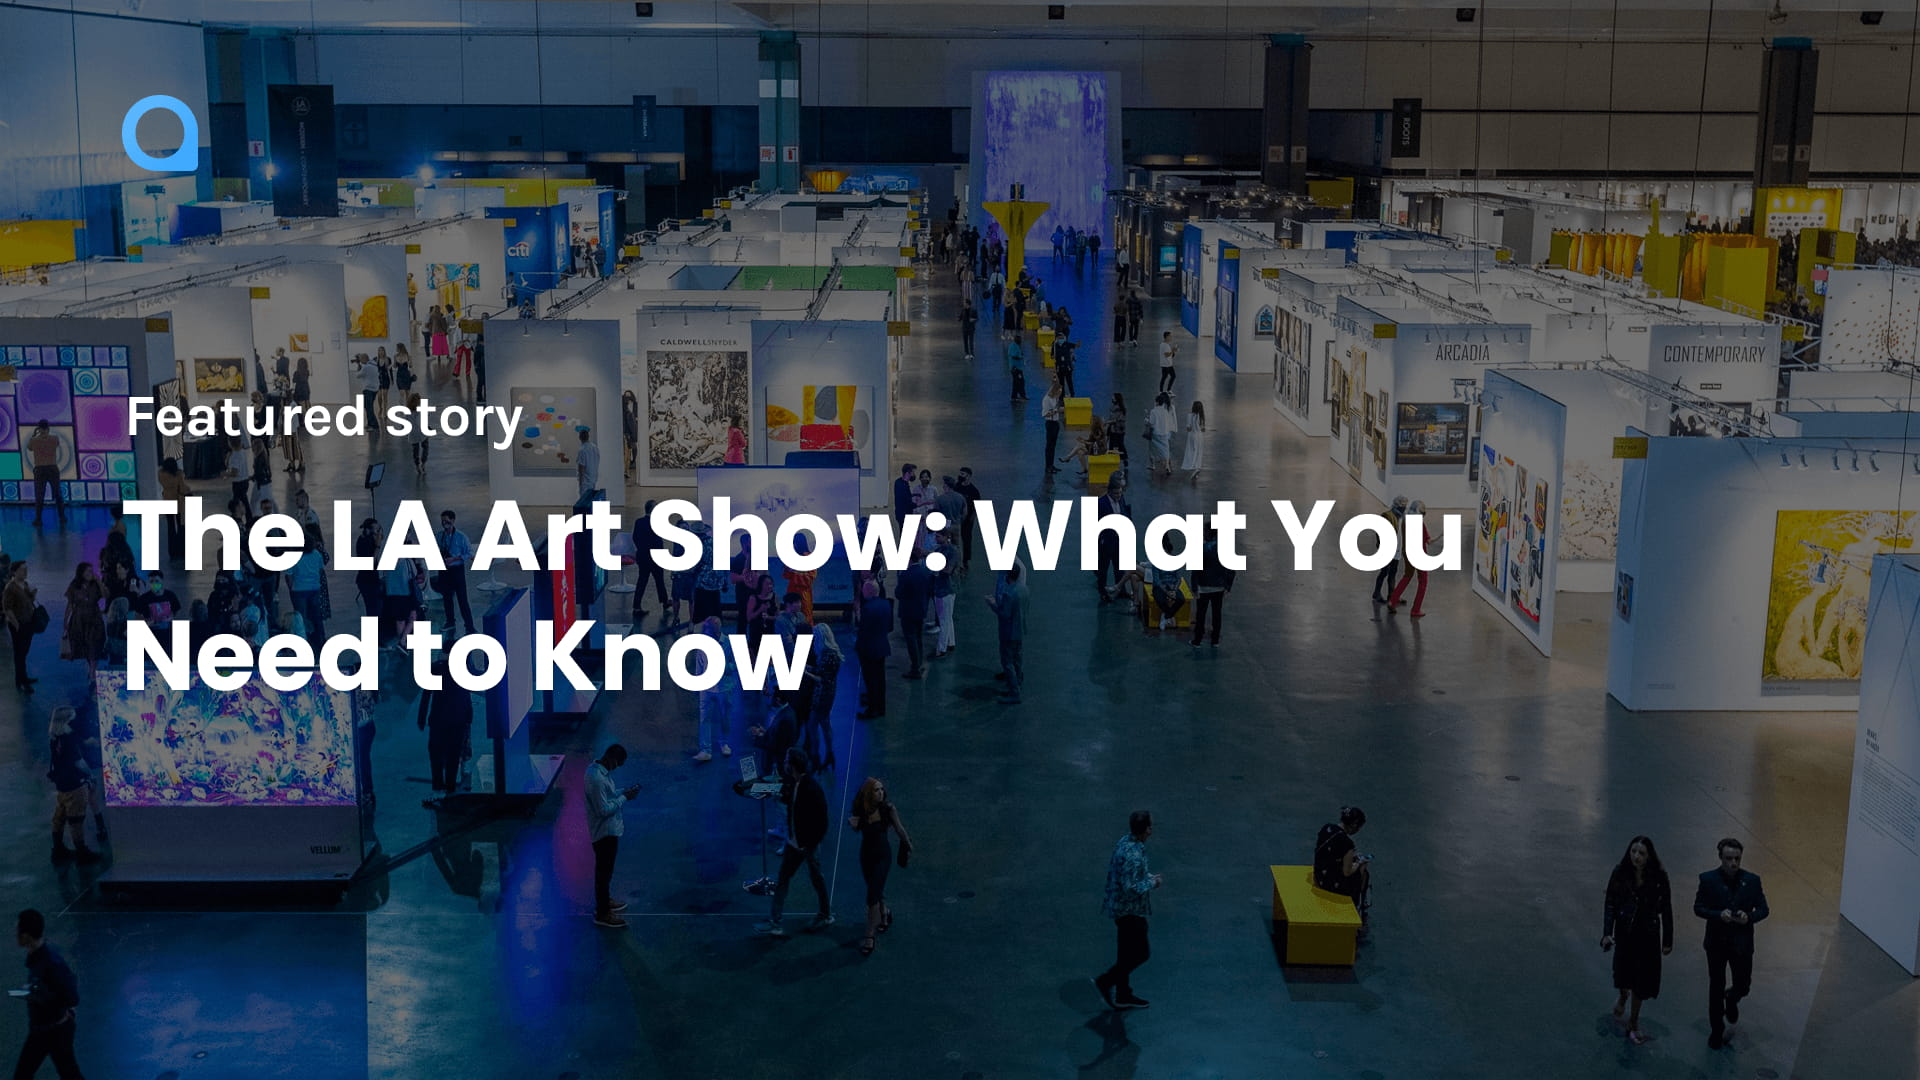 The LA Art Show: What You Need to Know